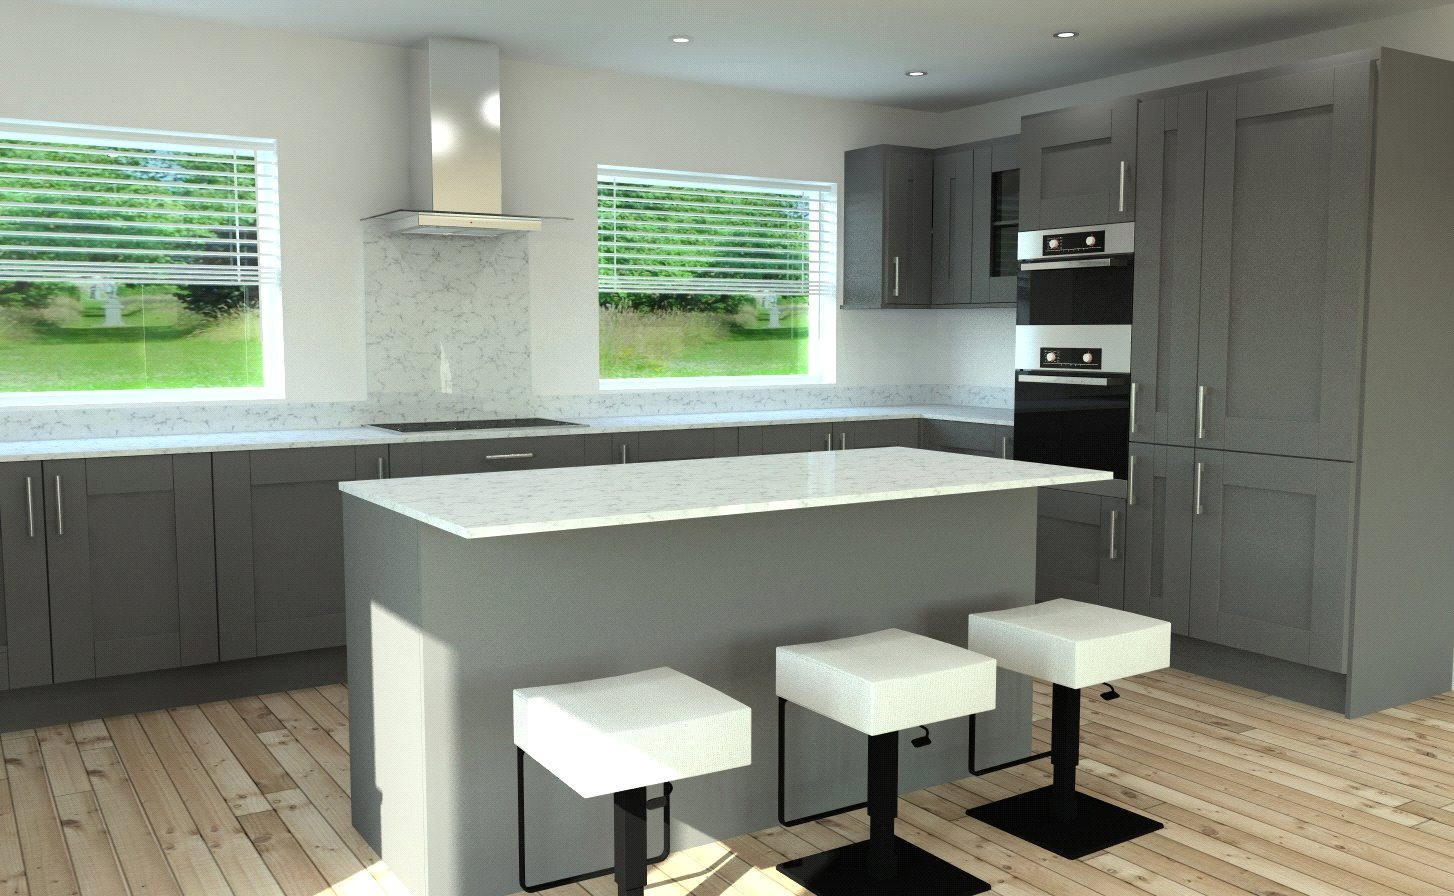 4 bed house for sale in Starlings View, Arundel Road, Angmering 6